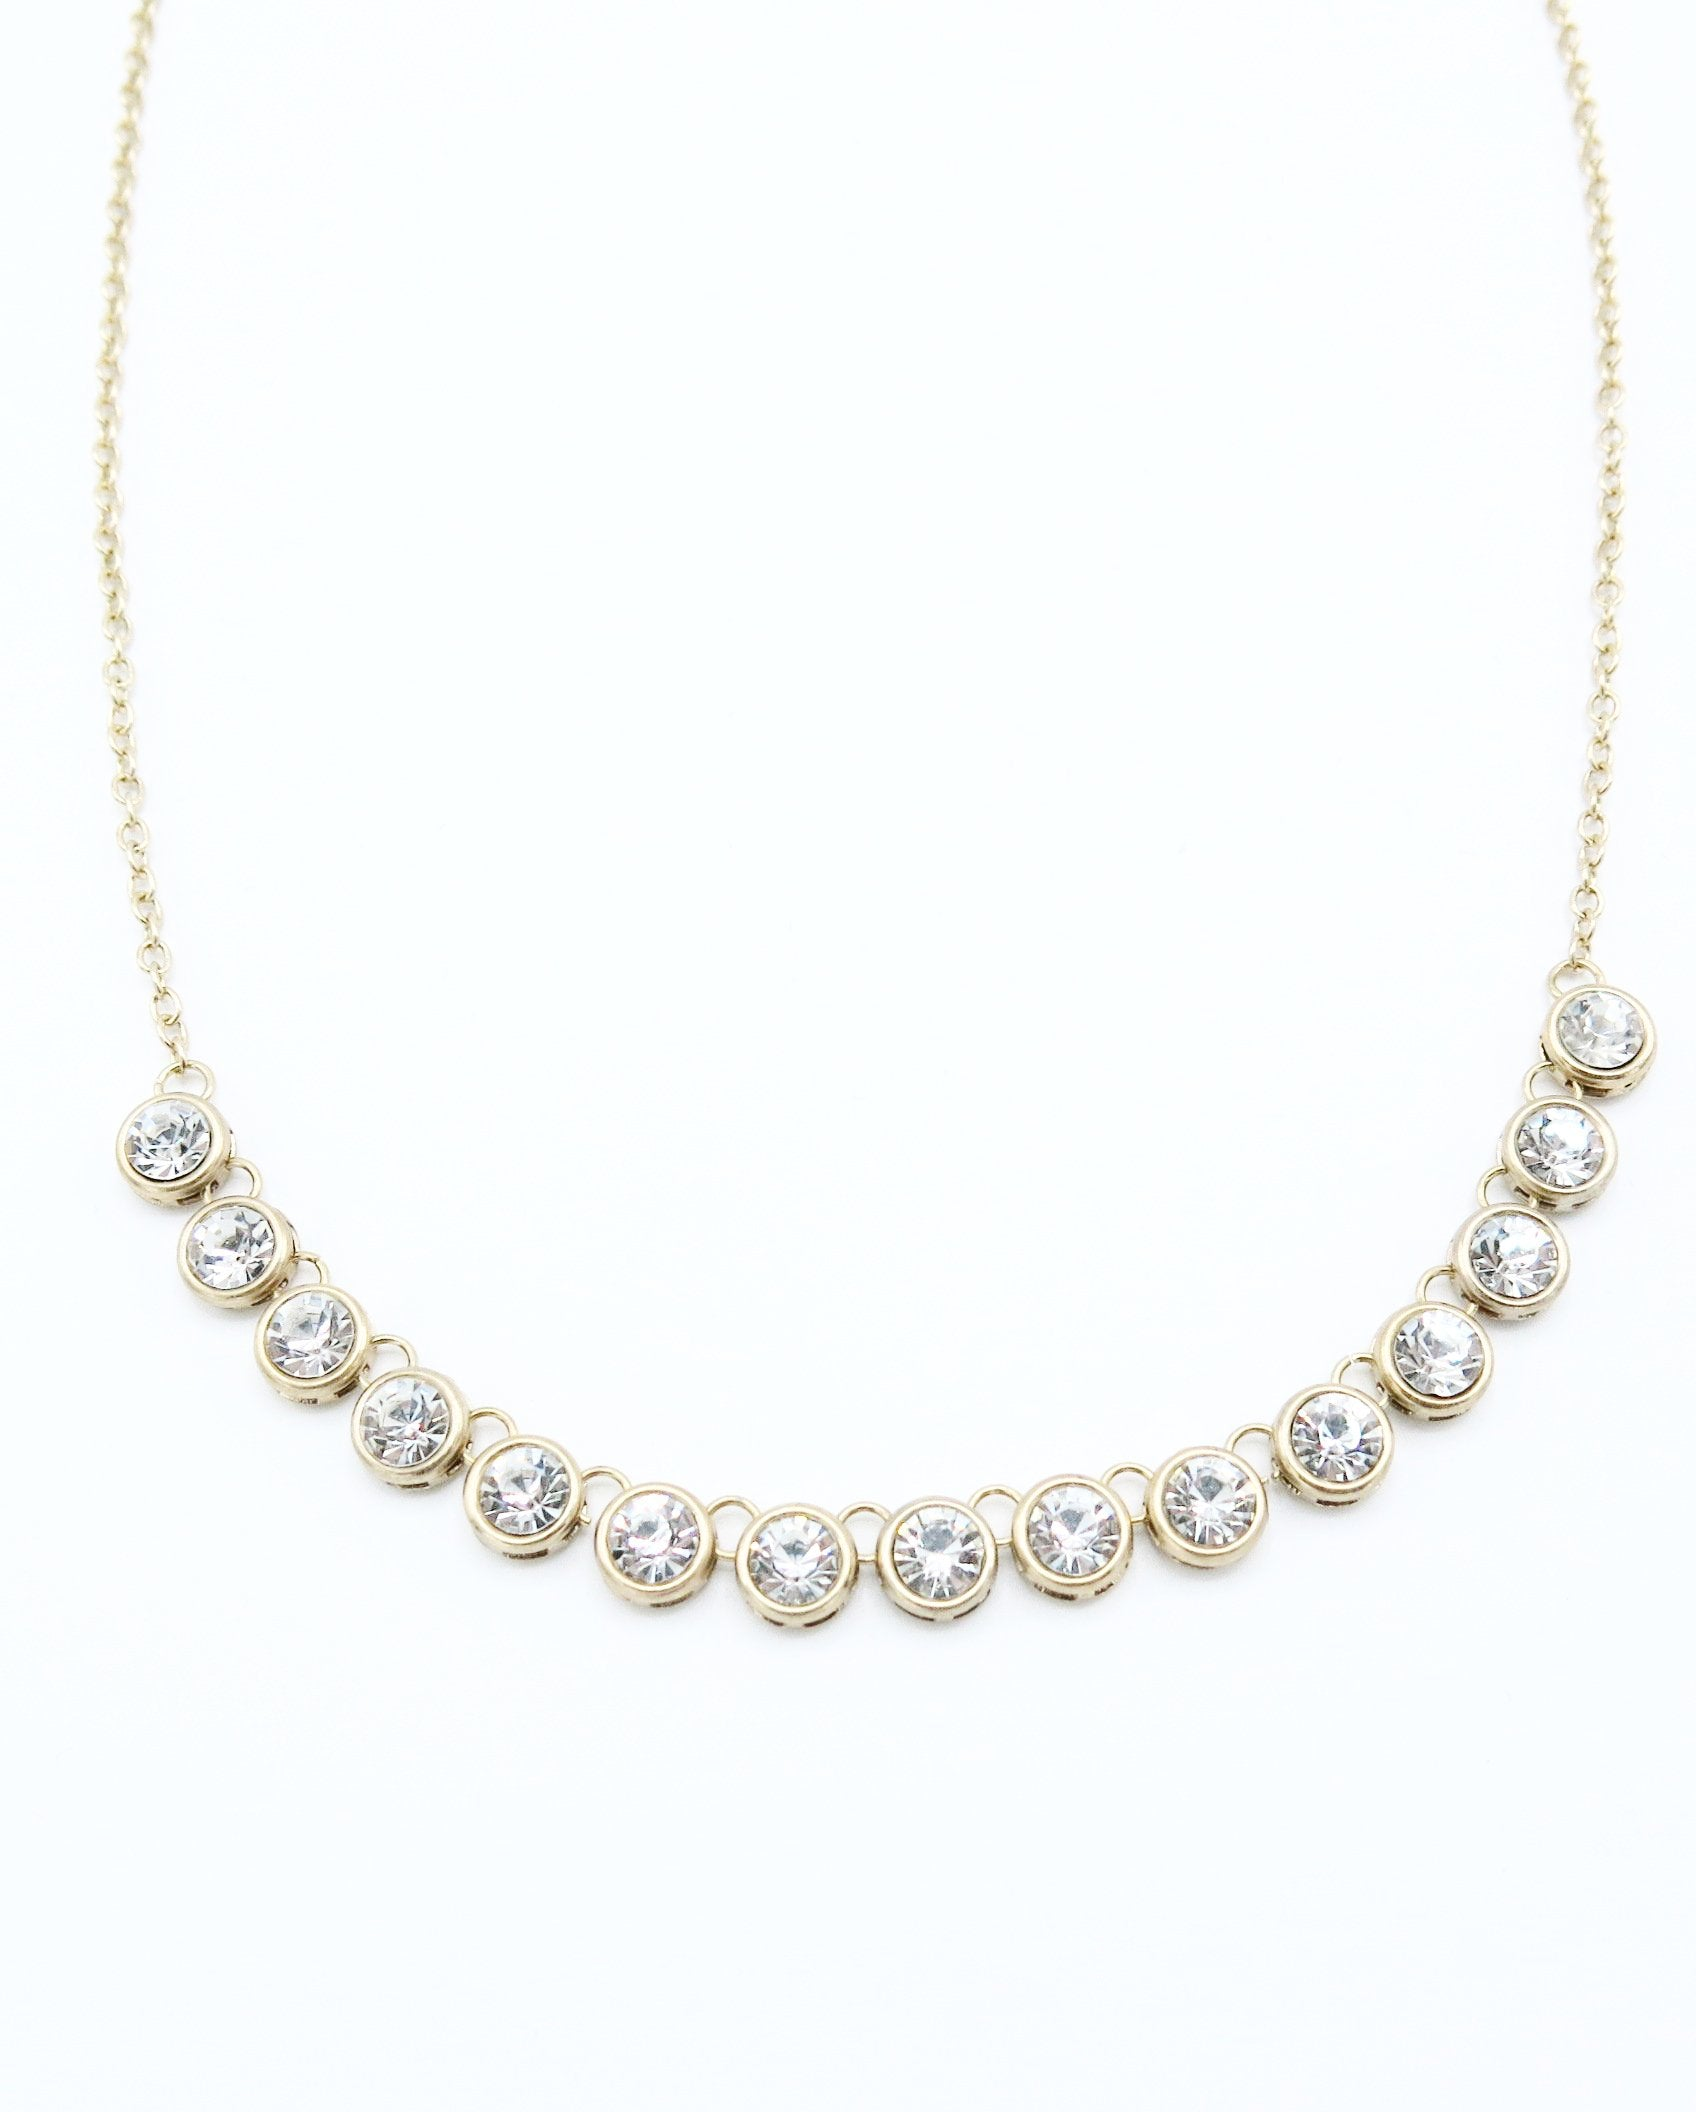 Medium Length Necklace with Crystal Pendants in Gold